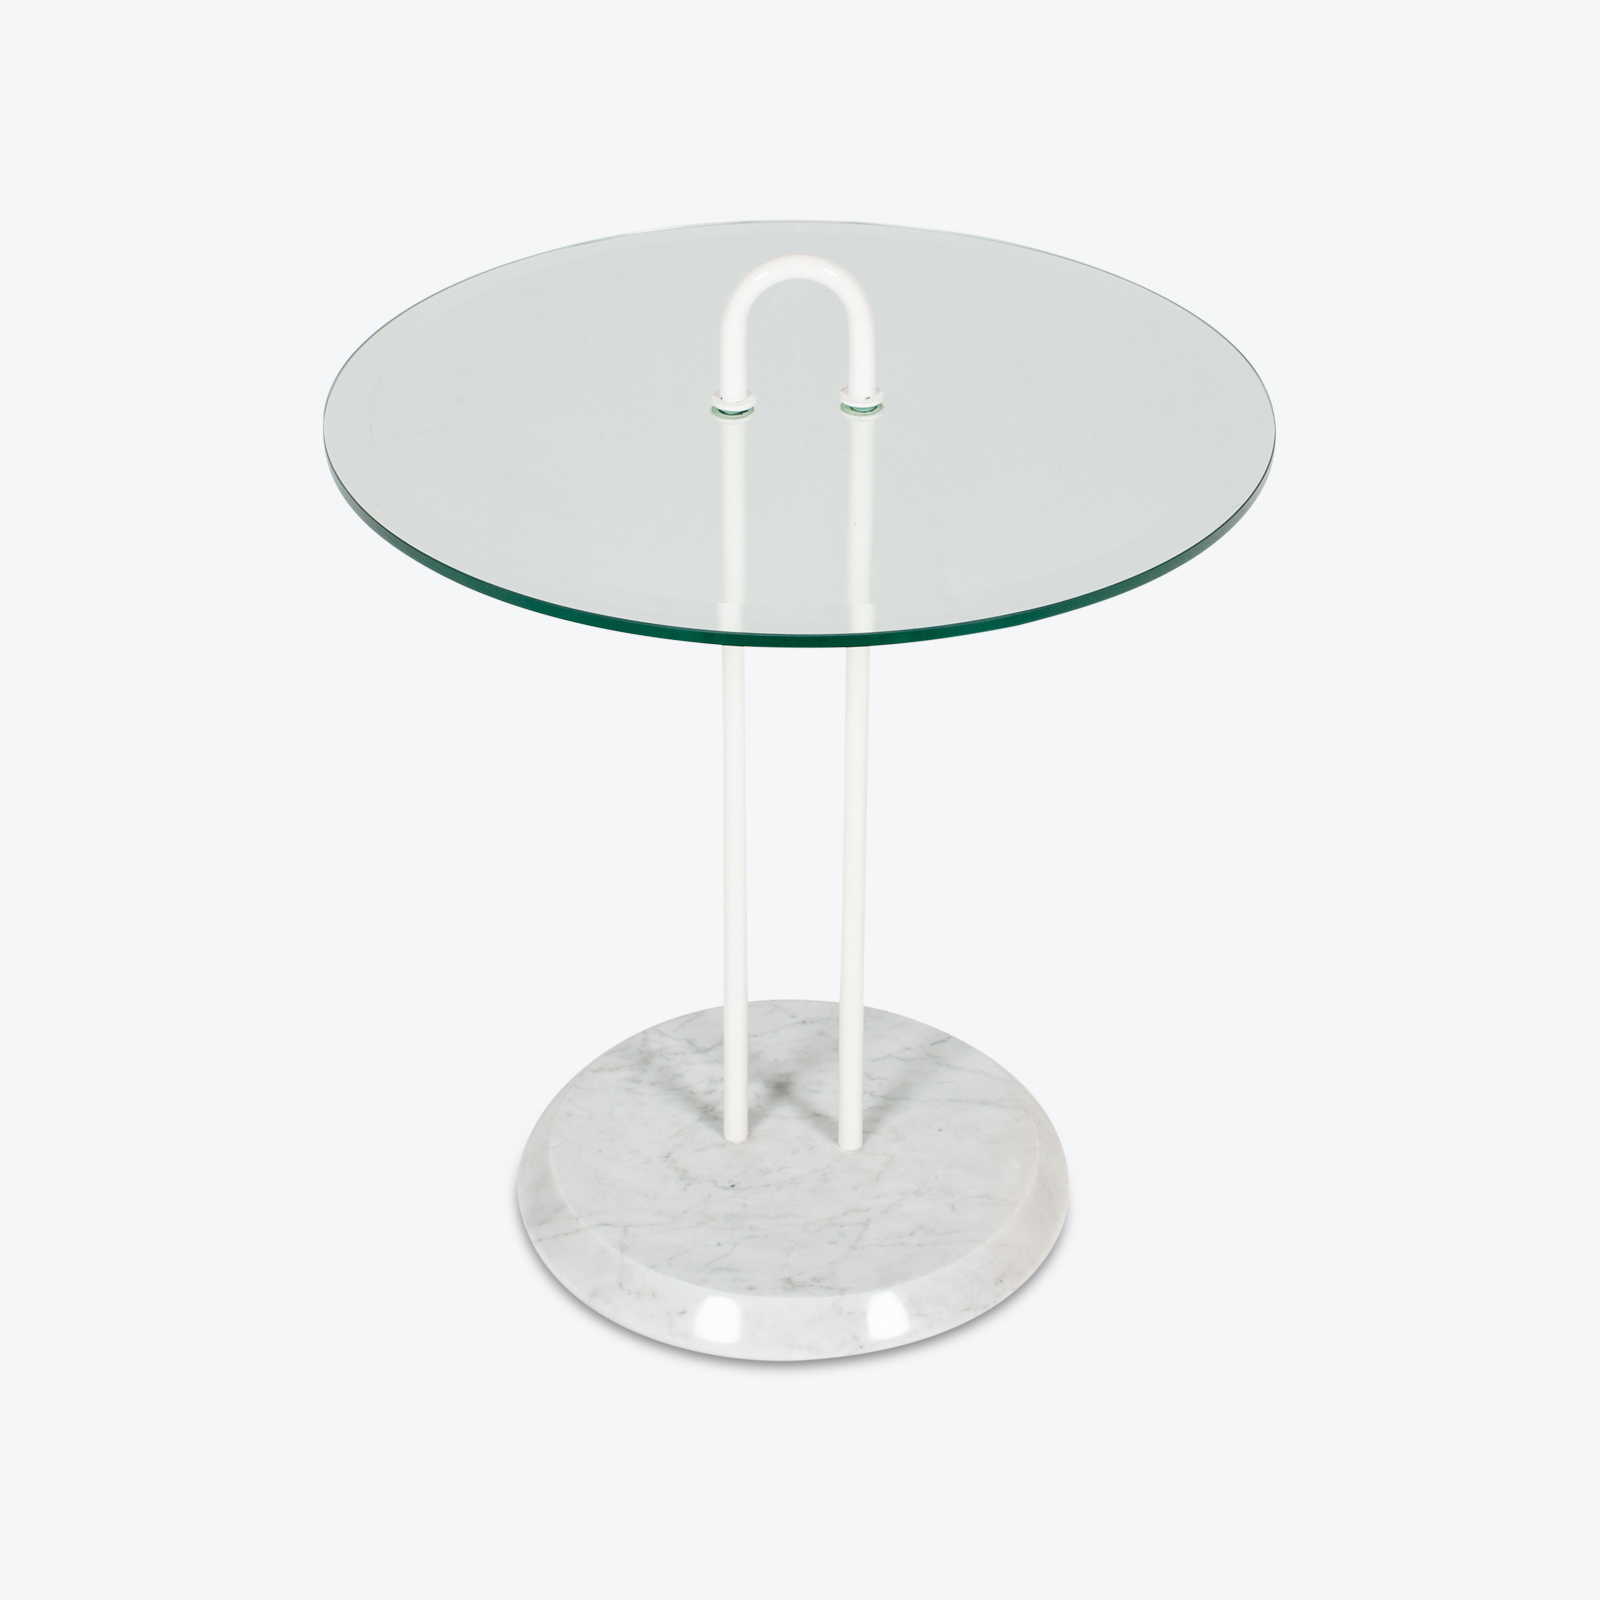 Round Side Table In Glass And Marble By Angelo Mangiarotti (mt Ct 195 908 It) 3 Hero